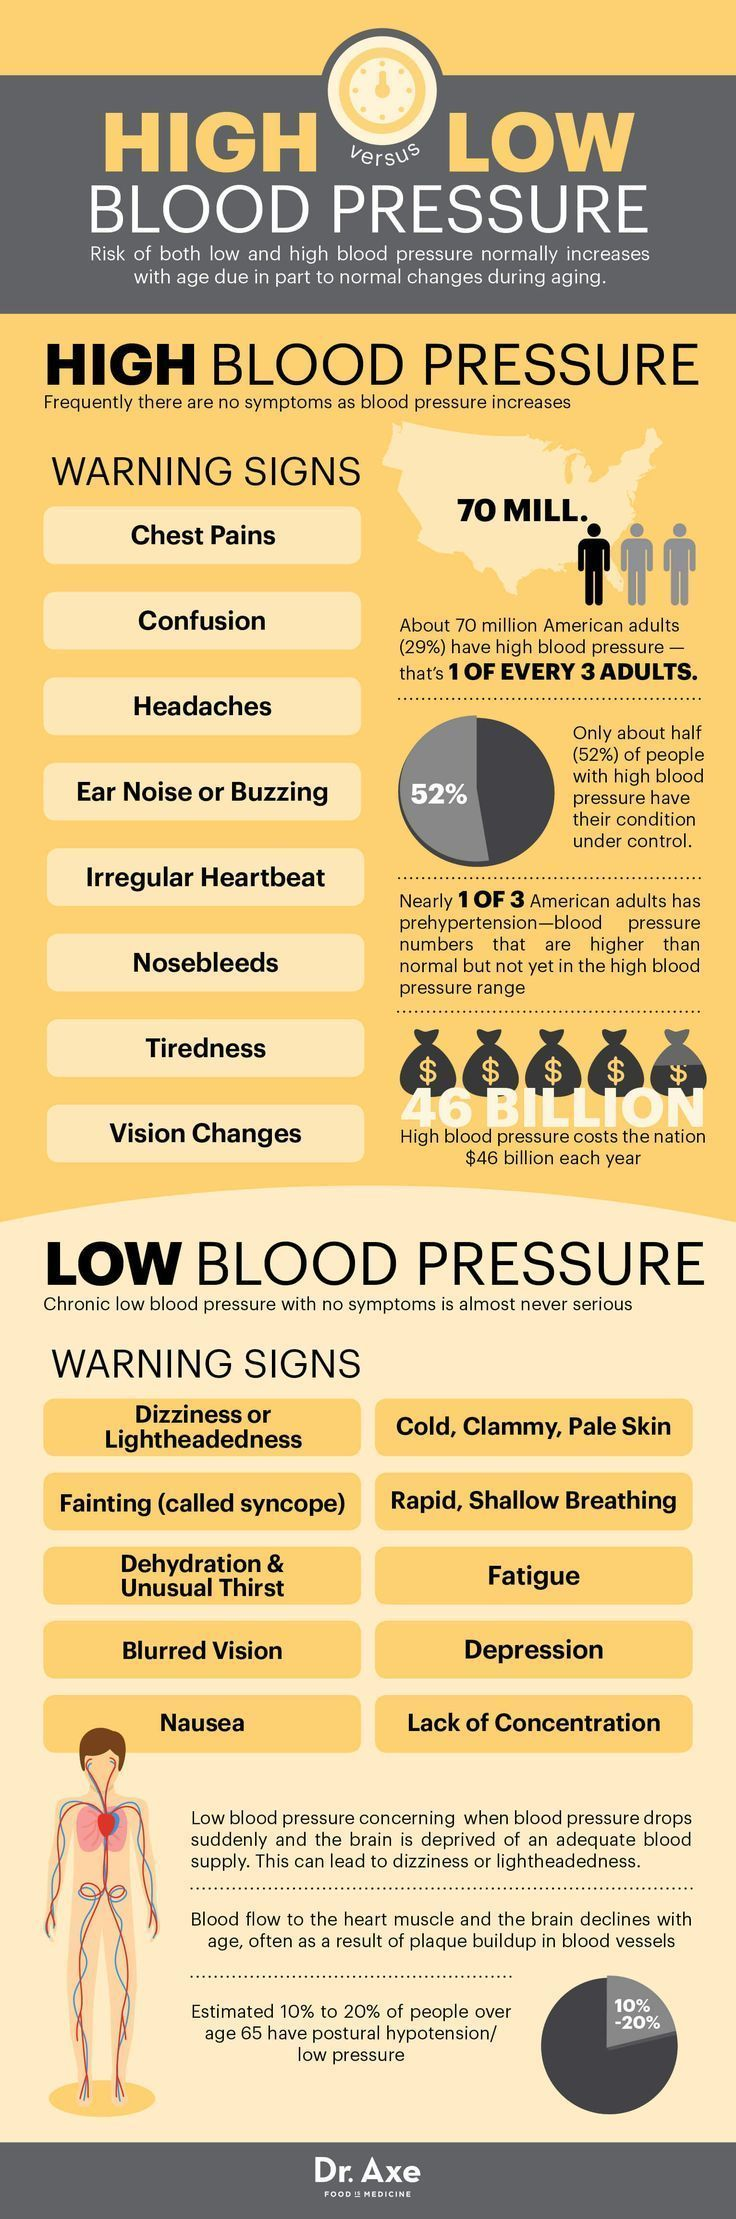 High Blood Pressure Symptoms You Can Reverse Naturally.... #SWaGKing ✨☝★ www.swaggerkinginnovations.com ★¥£$★ ★$₭¥£$★ ★$₭★♥★$₭★